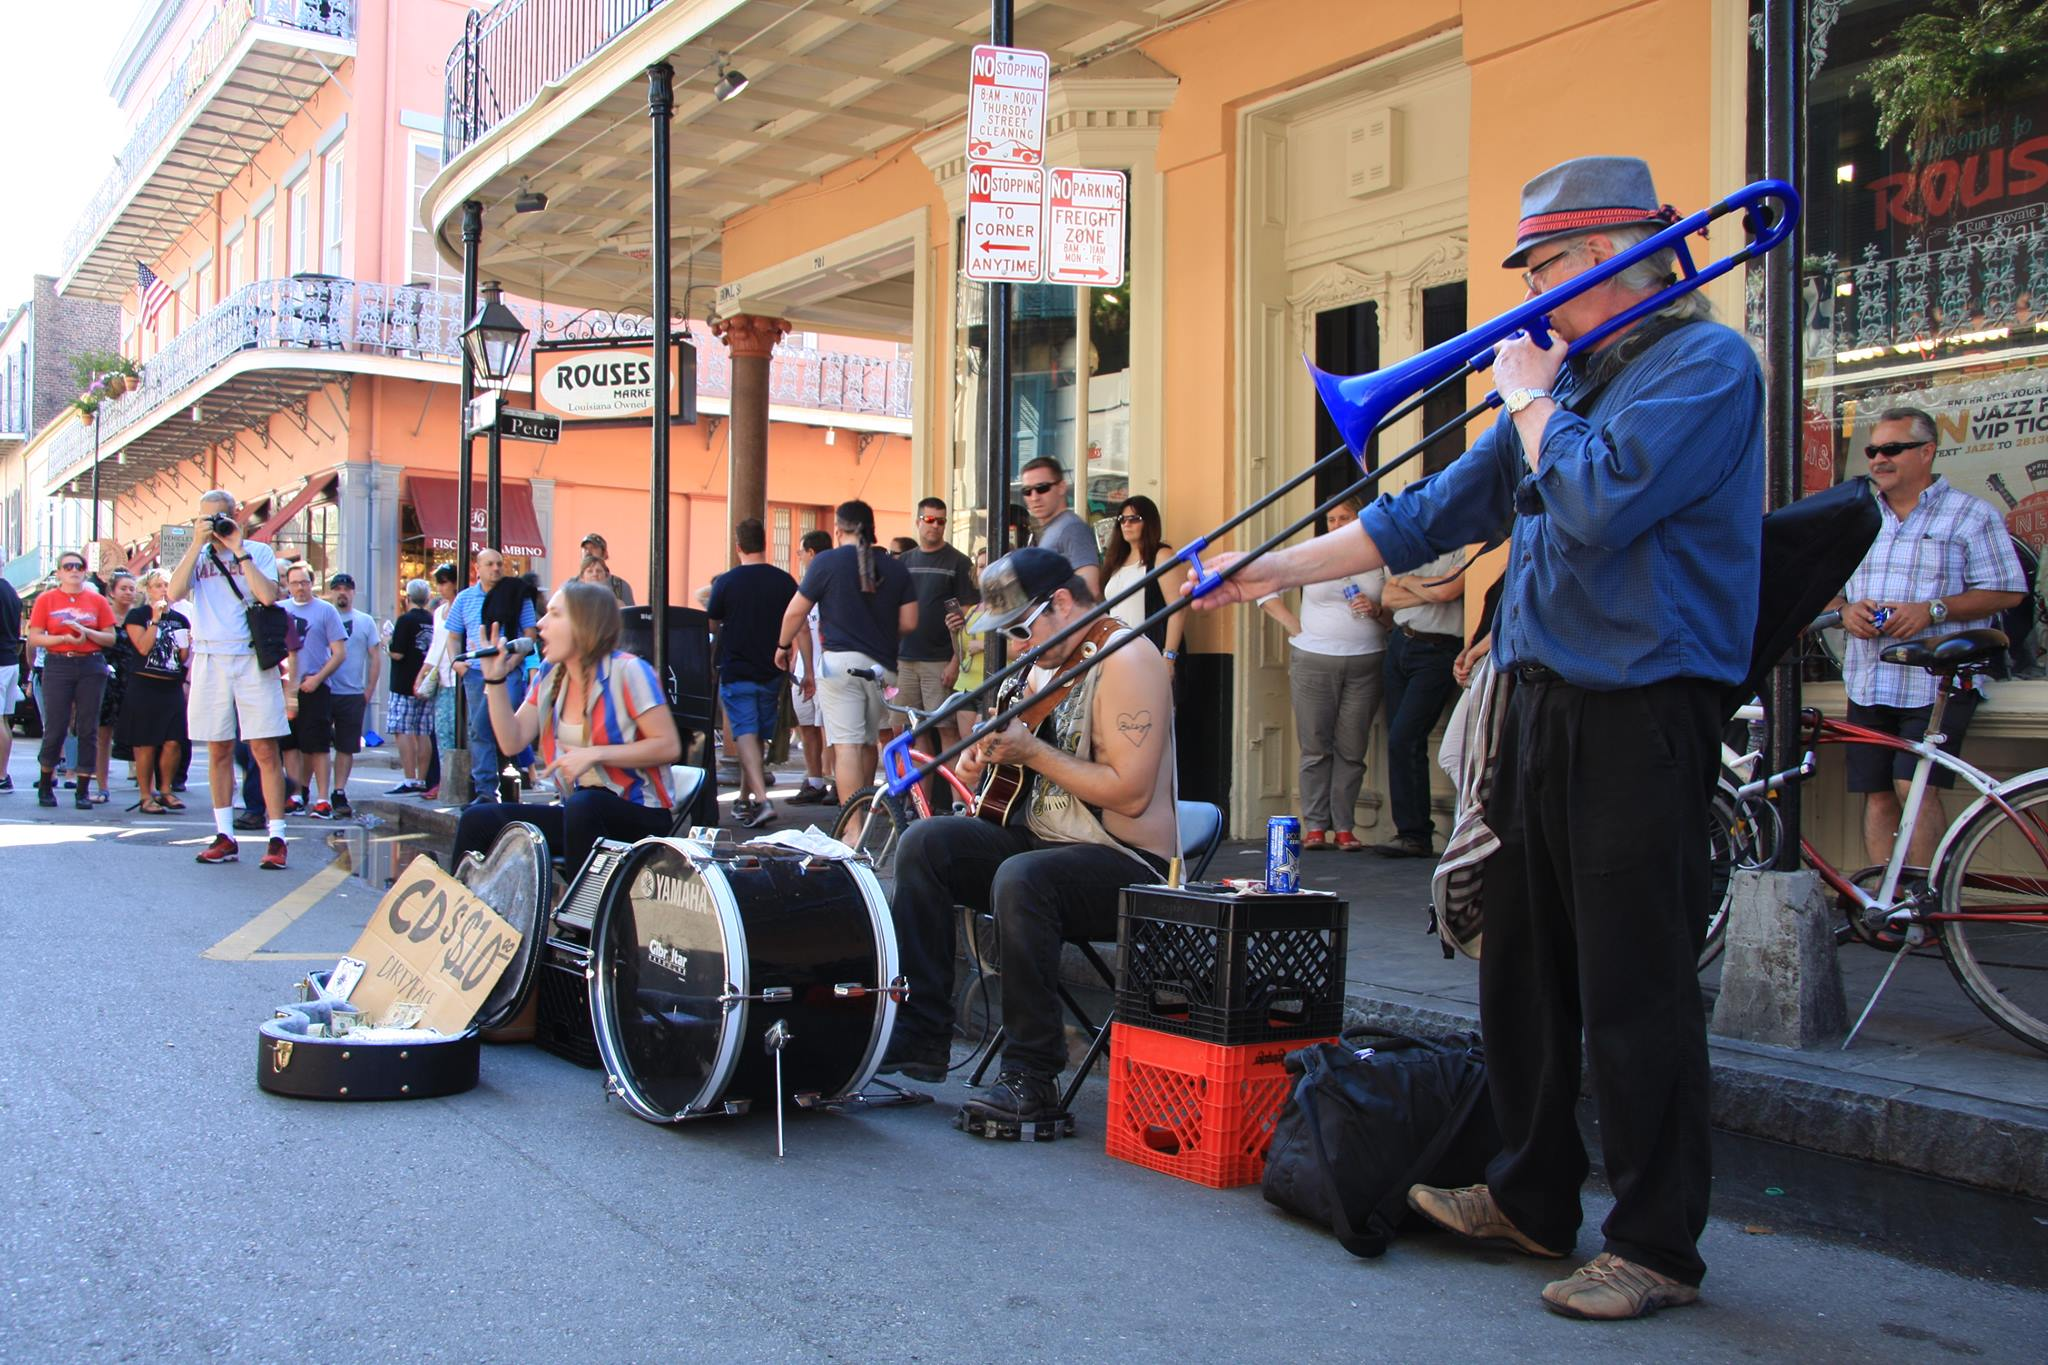 A street performance in the French Quarter of New Orleans.